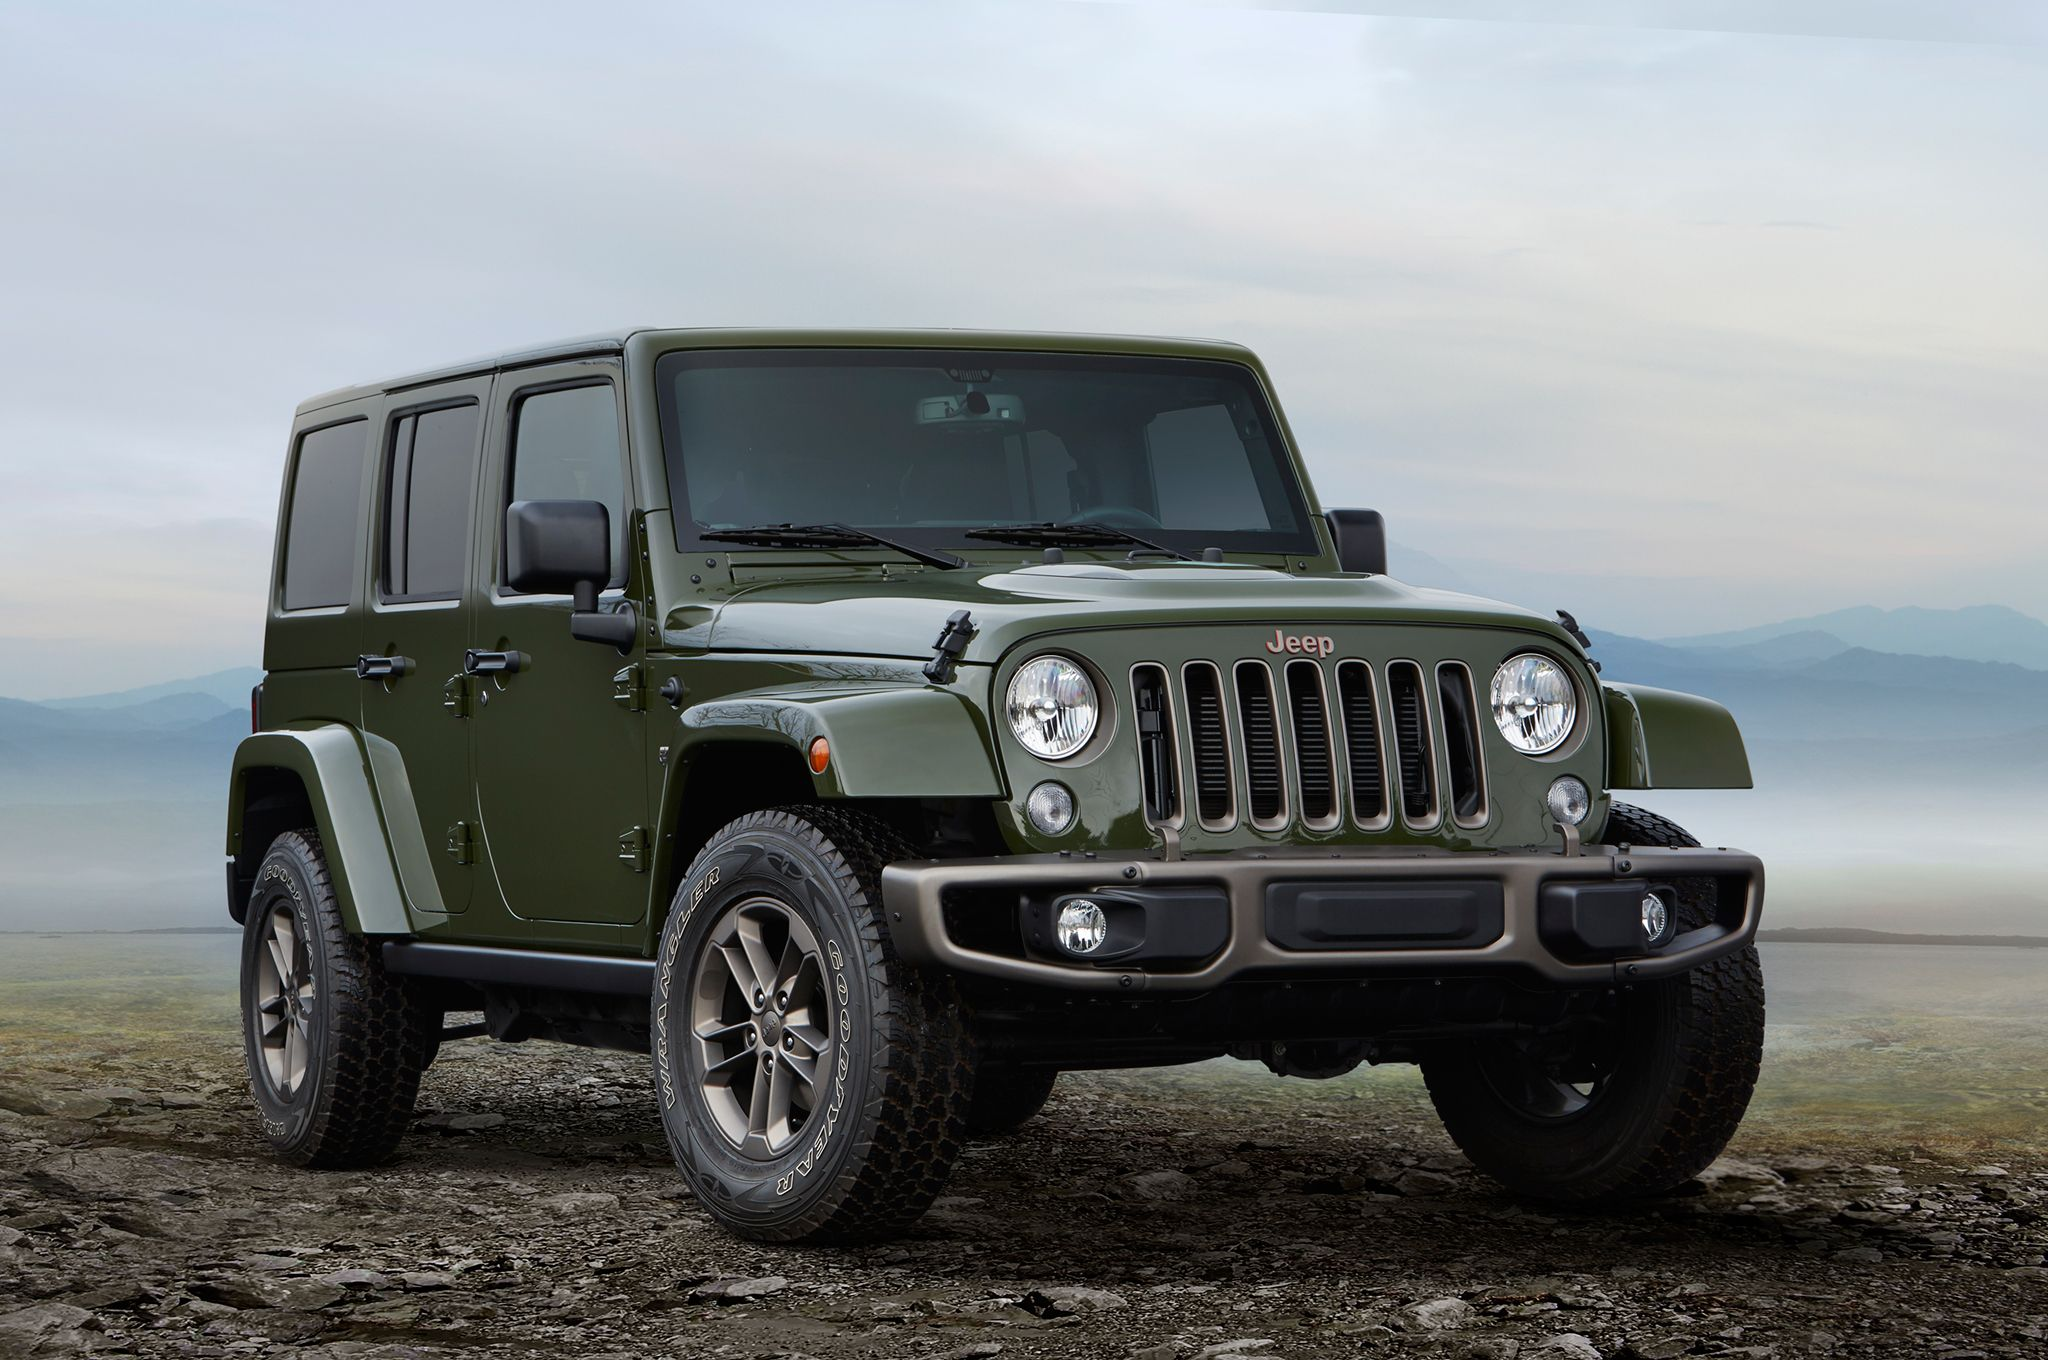 2016 Jeep Wrangler Unlimited 75th Anniversary Edition front three